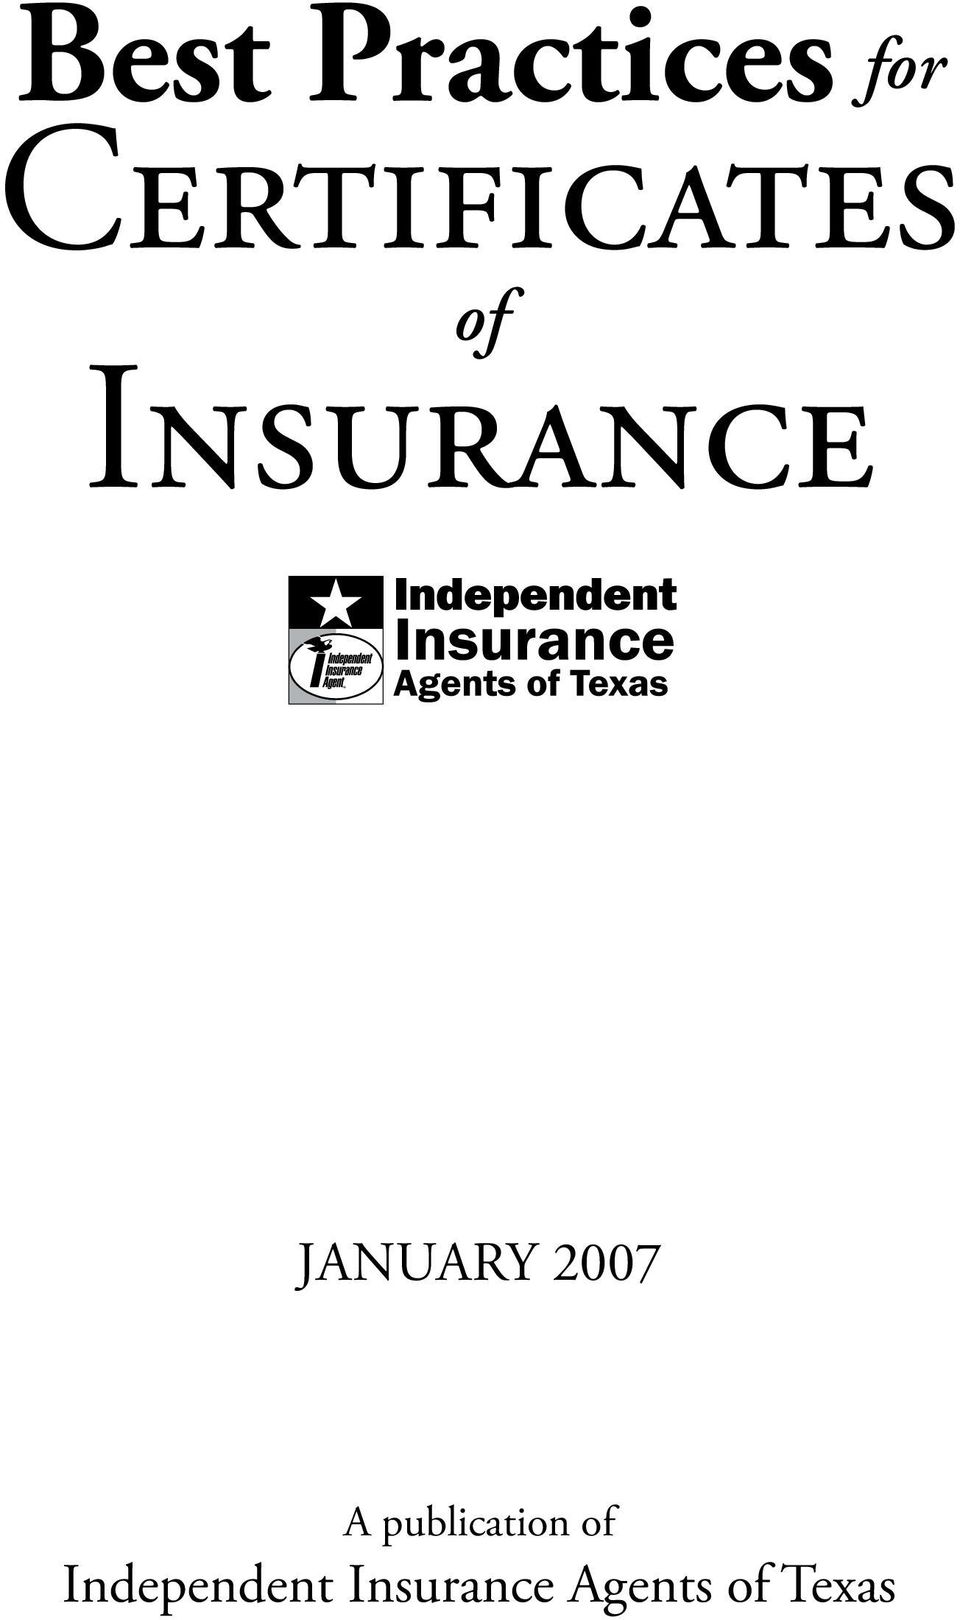 January 2007 A publication